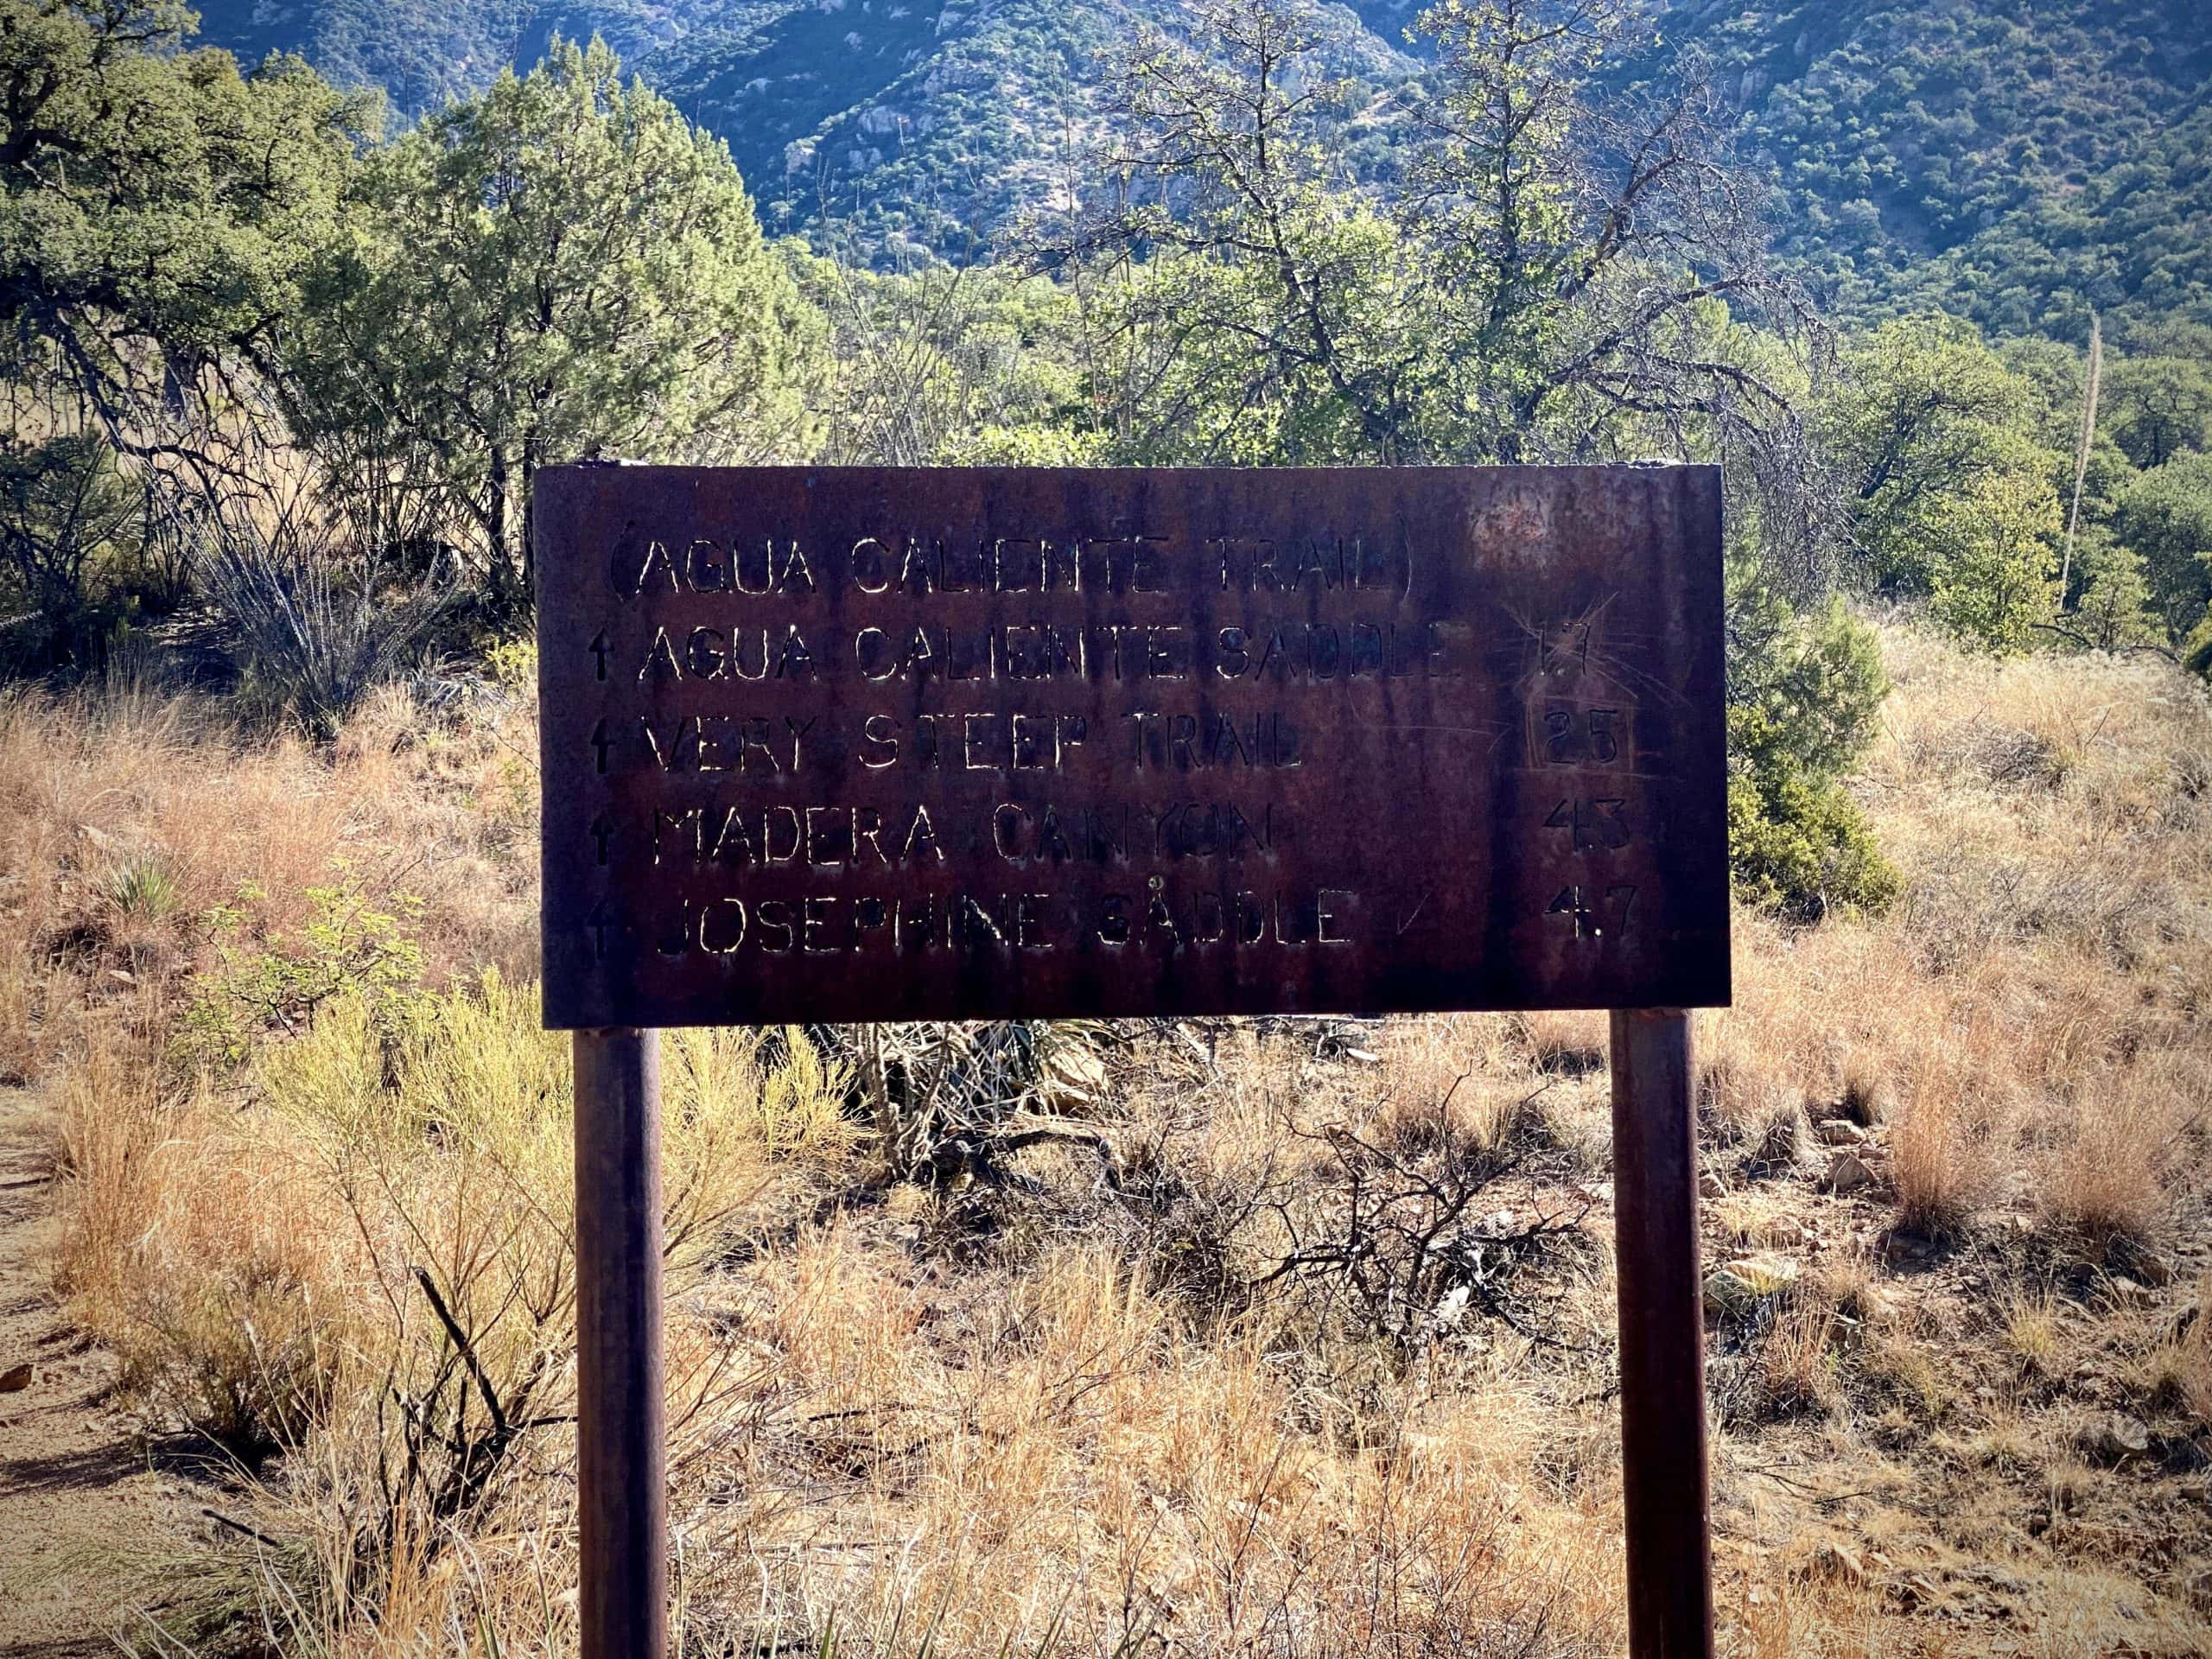 Trail head sign for Aqua Caliente Canyon and other trails.